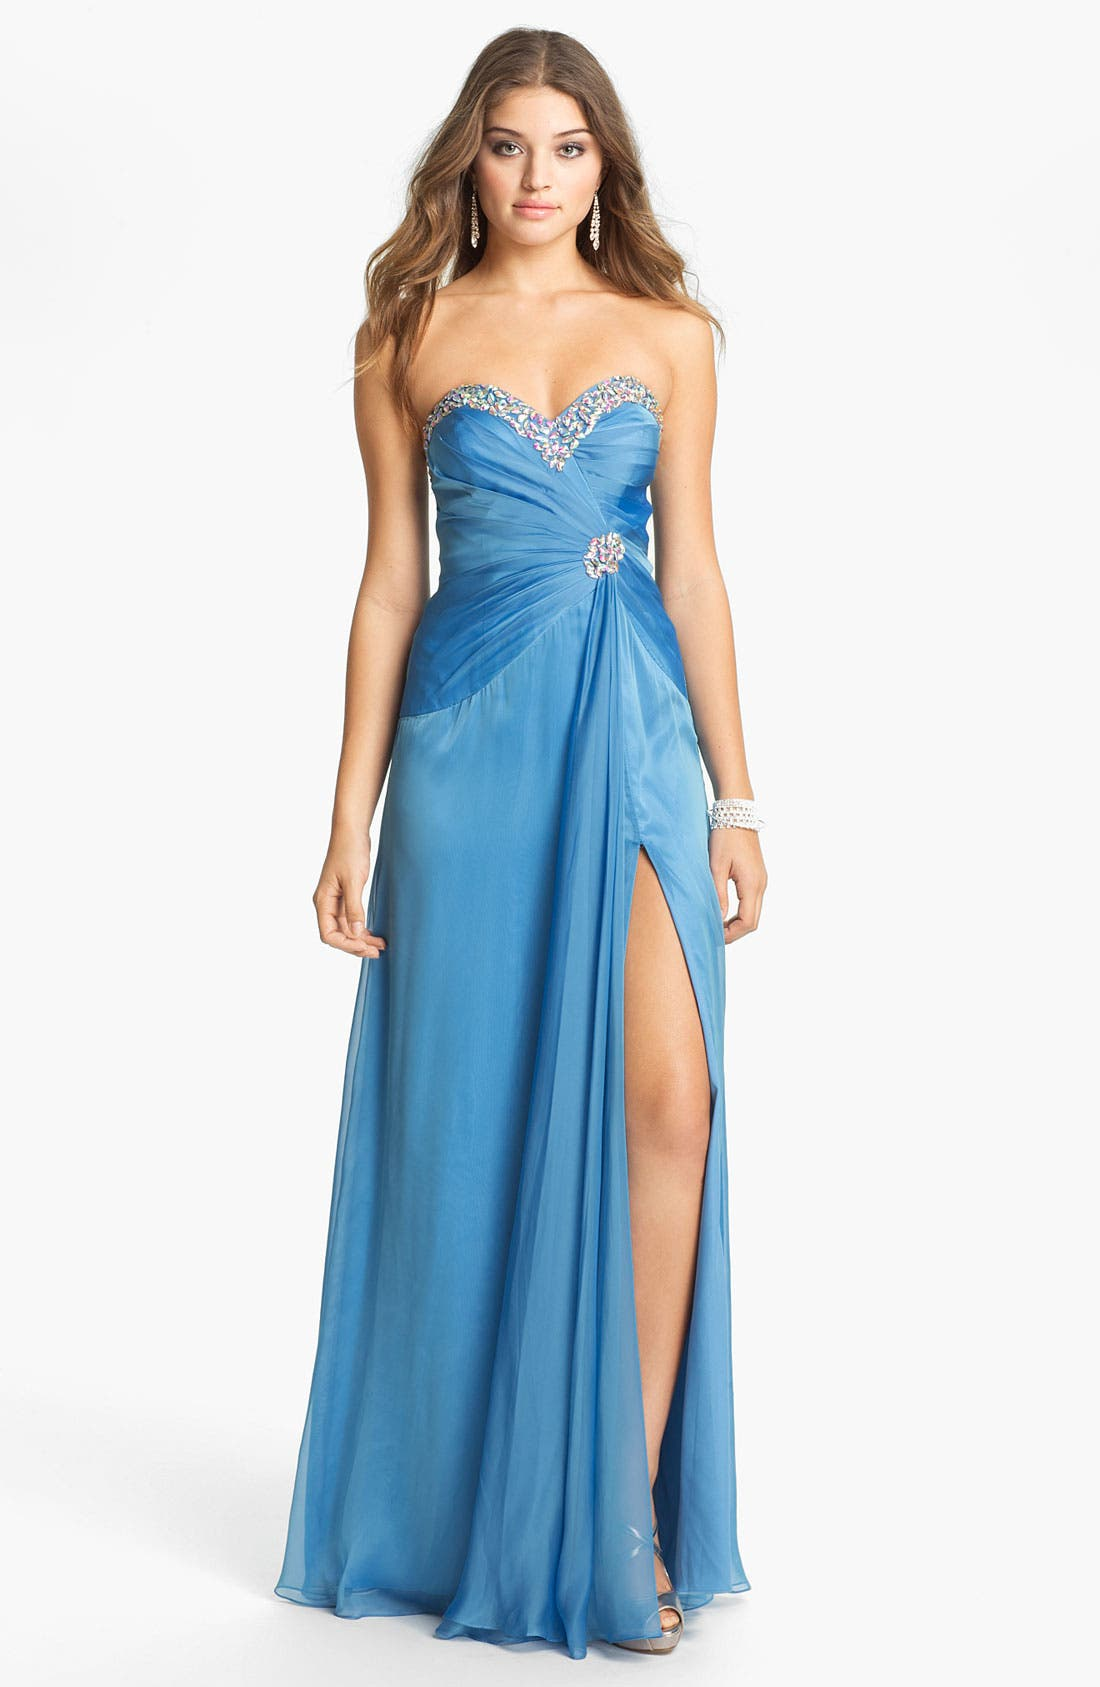 Alternate Image 1 Selected - Faviana Jeweled Sweetheart Silk Chiffon Gown (Online Only)